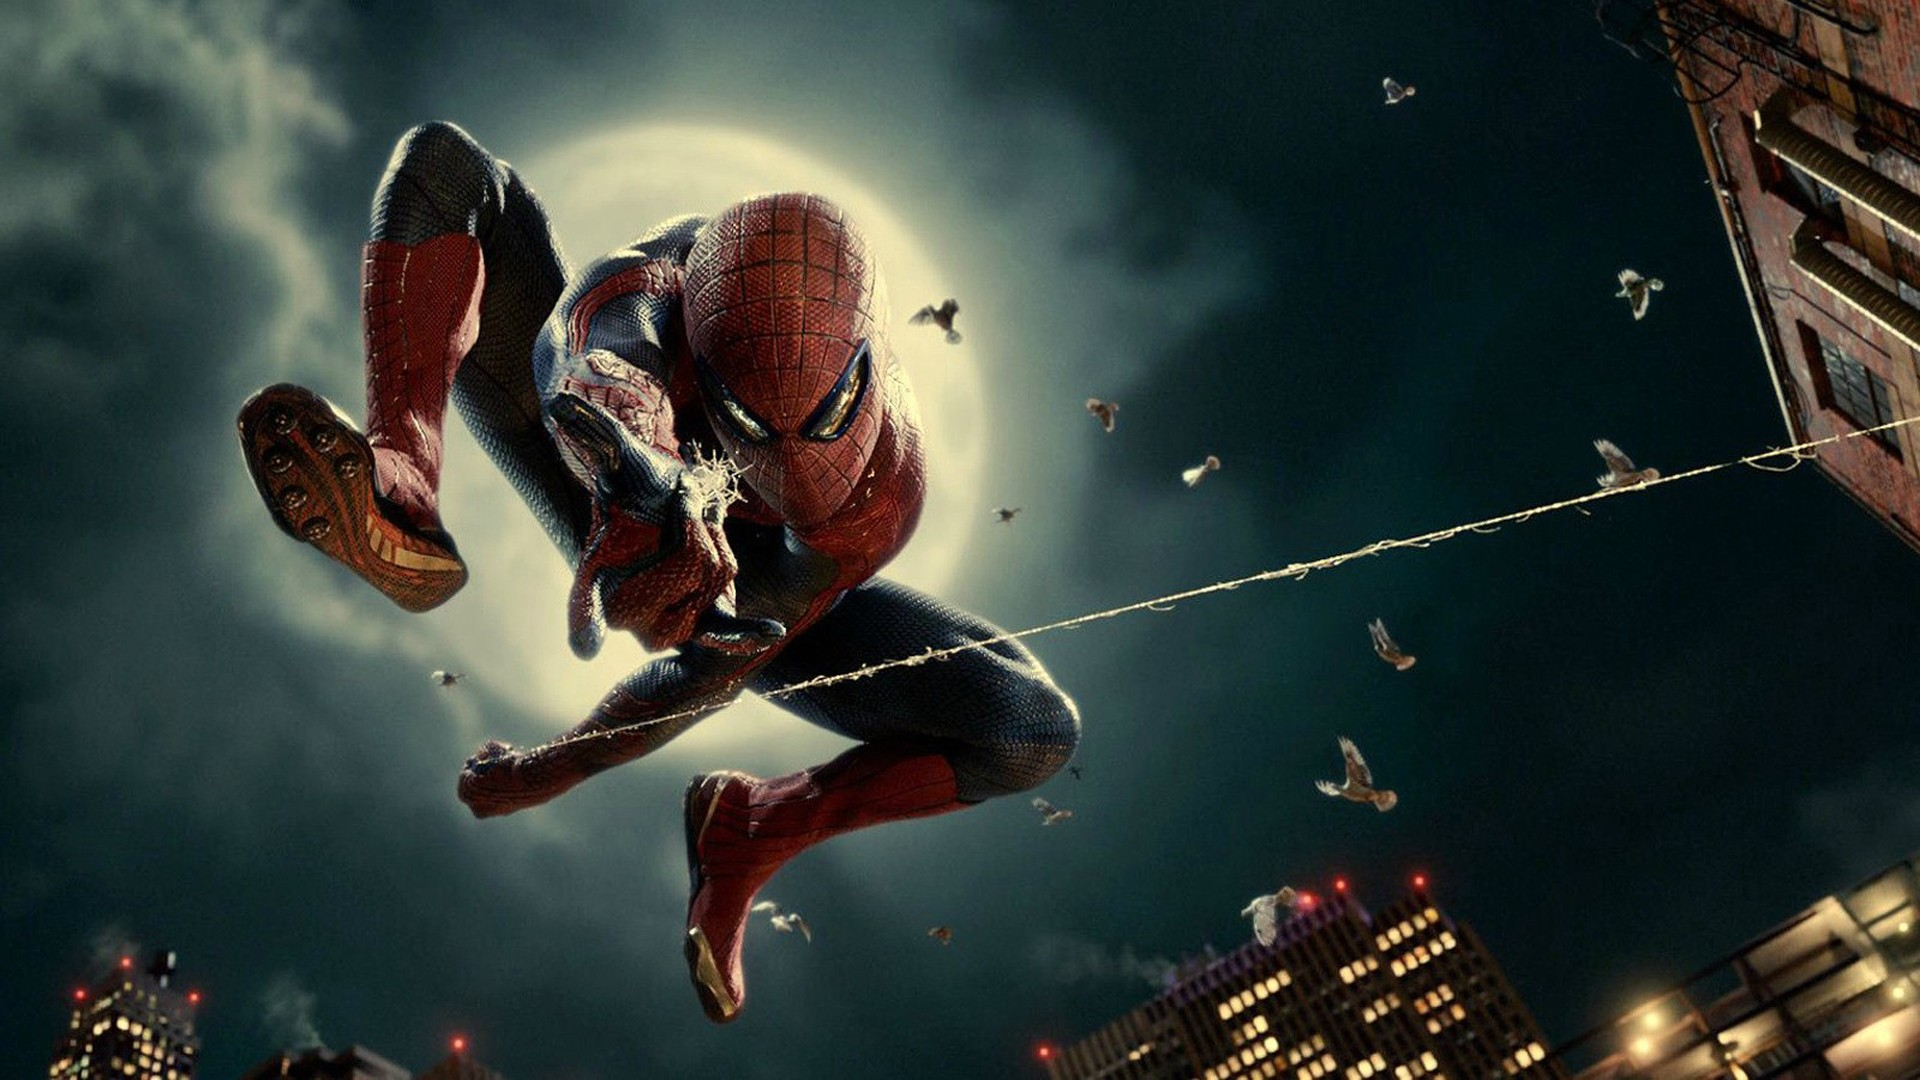 Spiderman pictures, spiderman wallpapers HD A6 Swing - free full high definition 1920 x 1020 marvel Comics Superheroes desktop laptop mobile phone background wallpapers images downloads. Spiderman 1, Spiderman 2, Spiderman 3, Spiderman 4, Spiderman 5.